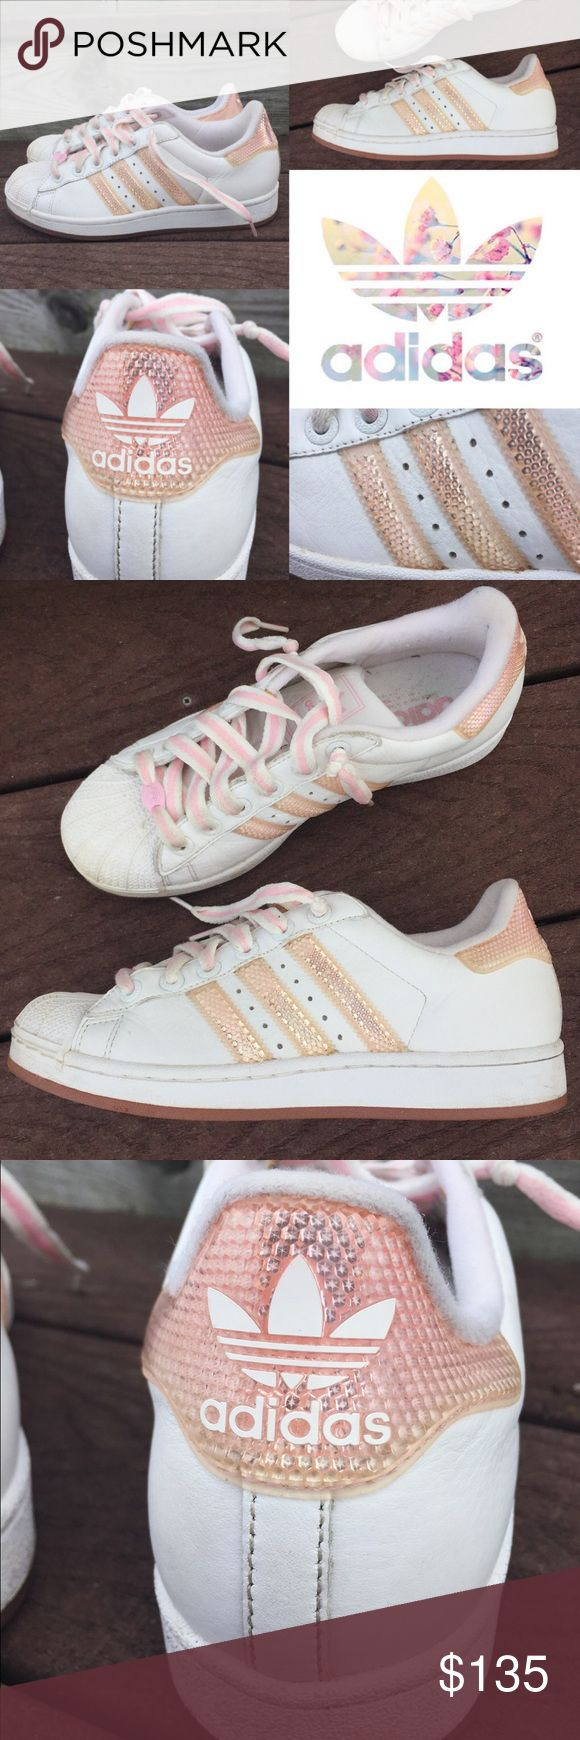 Rare Adidas superstar pink reflective stars Rare and awesome adidas superstars with pale pink reflective stripes and back. Inside the reflective color are teeny tiny stars. These are super cool! Worn only a few times and look great. No spots, stains or issues. Soles are not worn at all. Size 7.5  I'm told they're vintage but I believe they're from 2003. Spent the past 13 years in a closet waiting to be let out! Adidas Shoes Sneakers